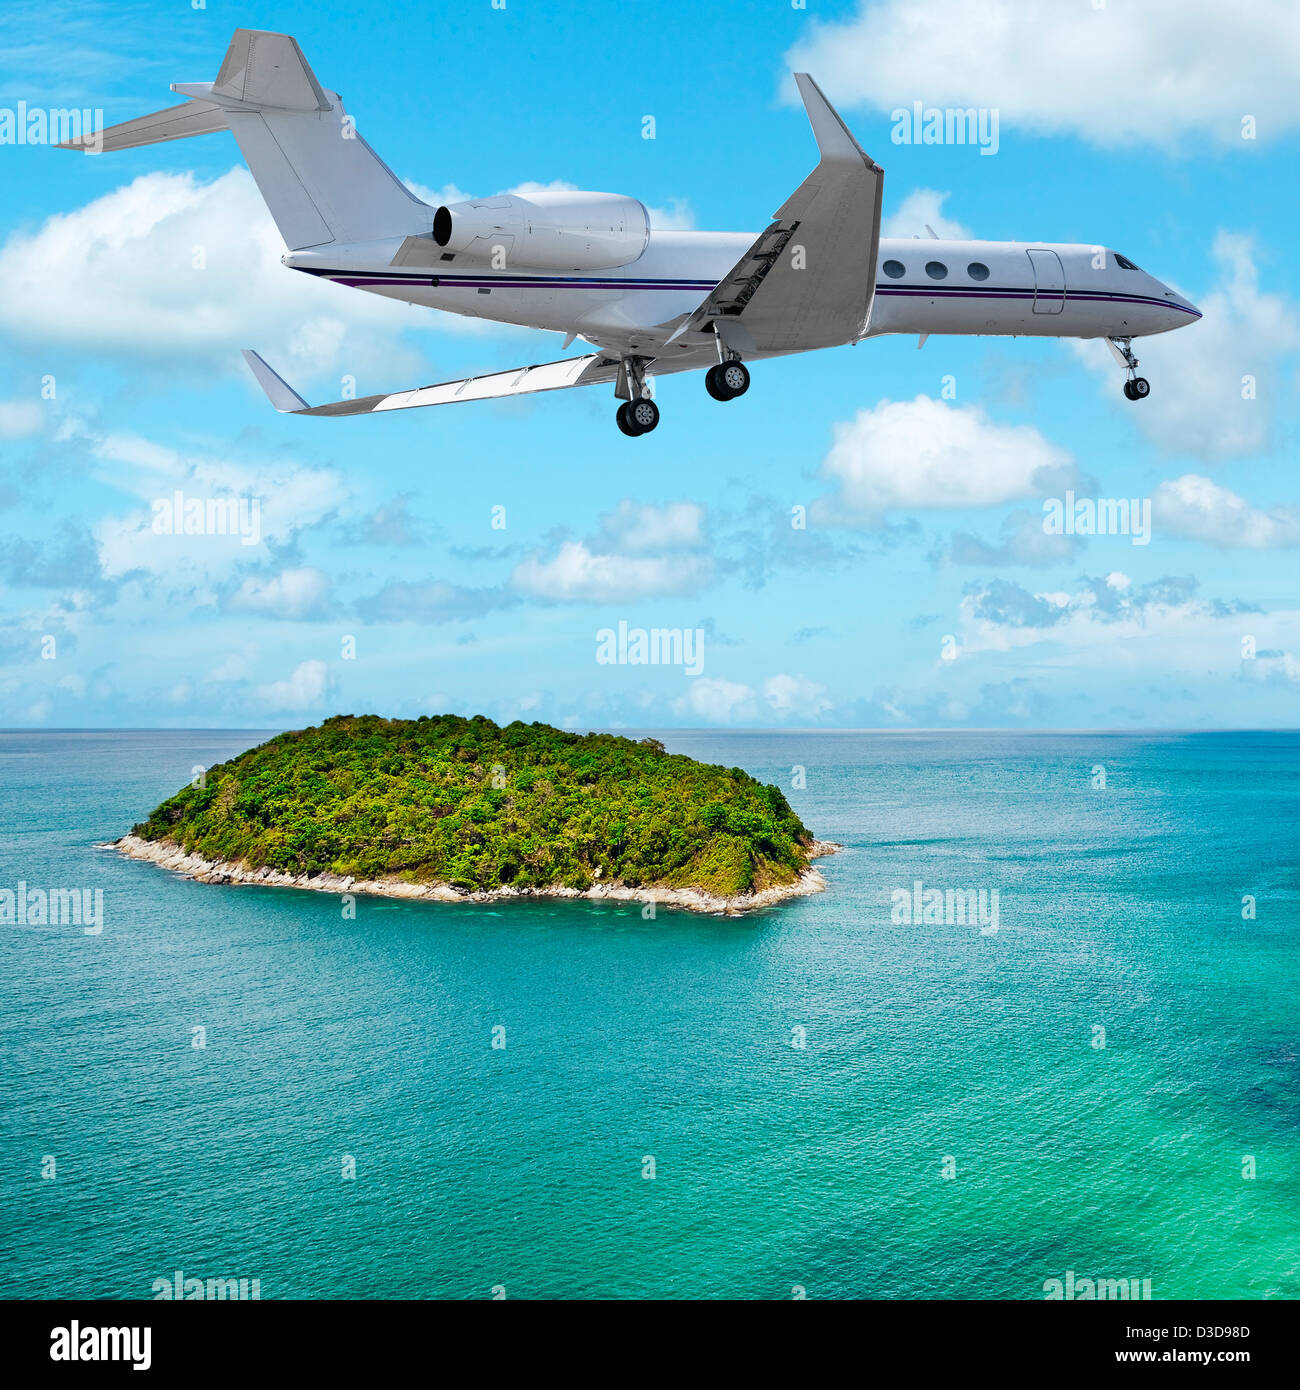 Private jet over the tropical island. Square composition. Stock Photo